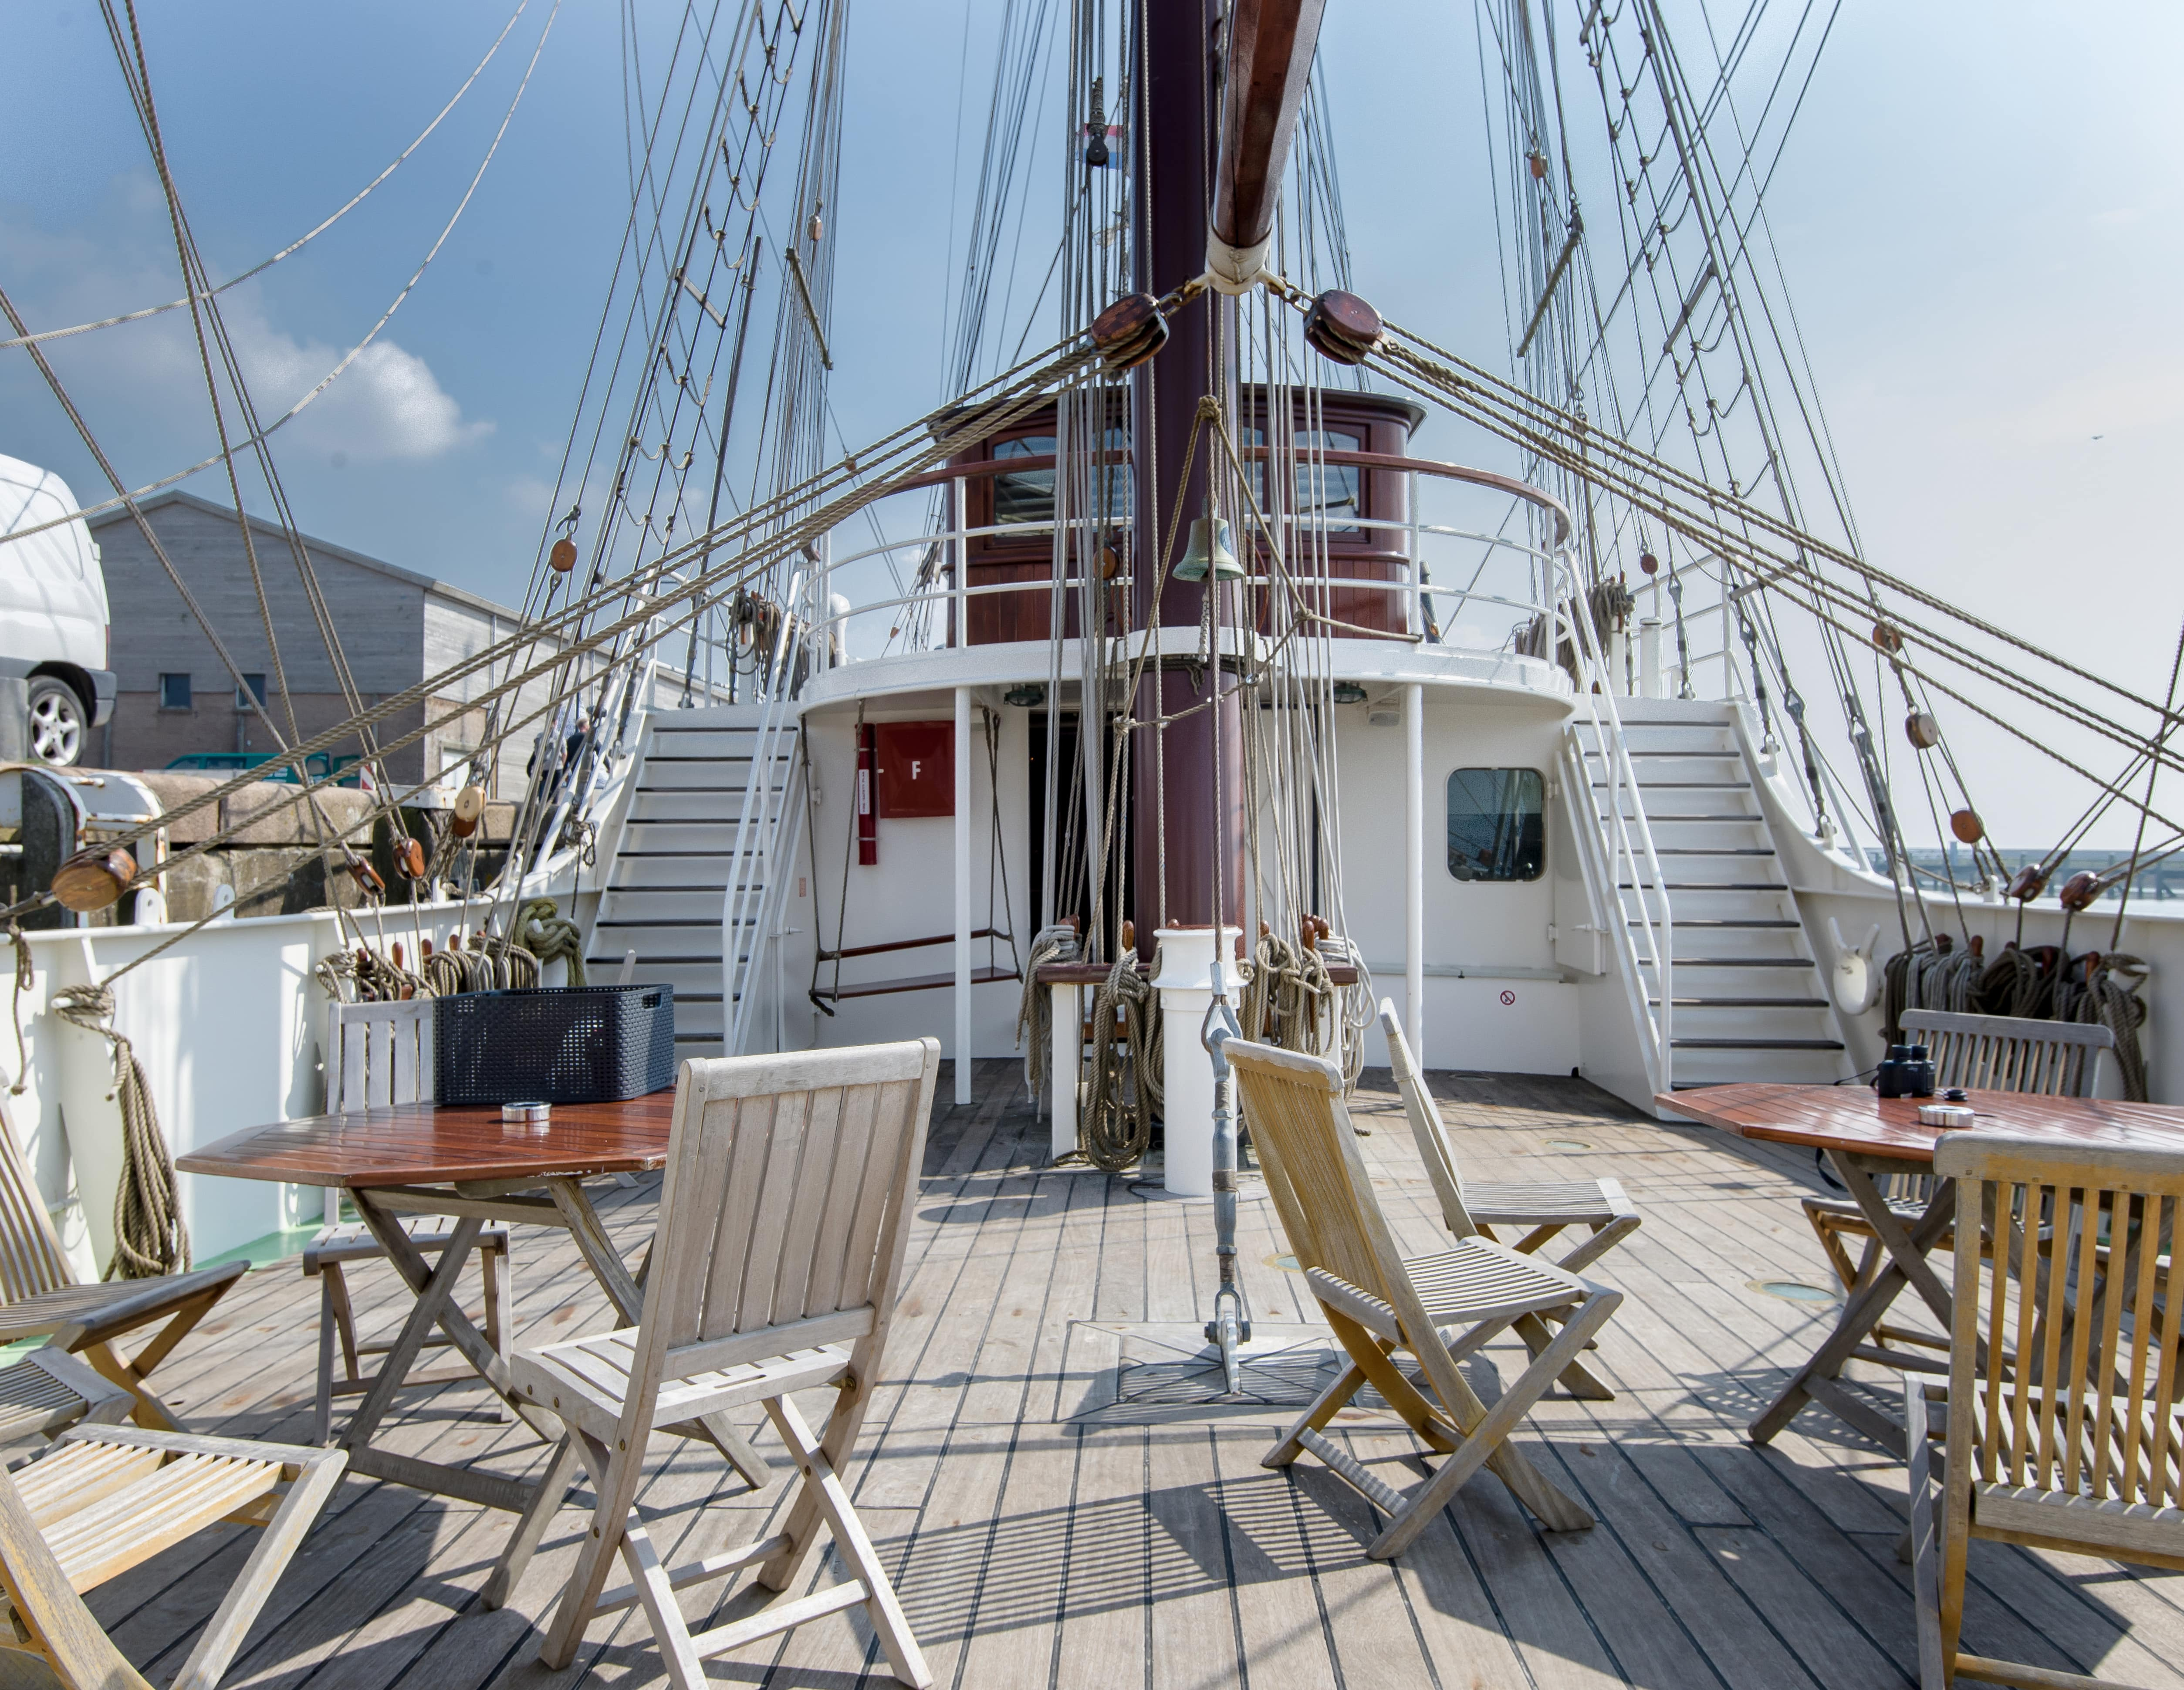 The maindeck of Tall Ship Artemis